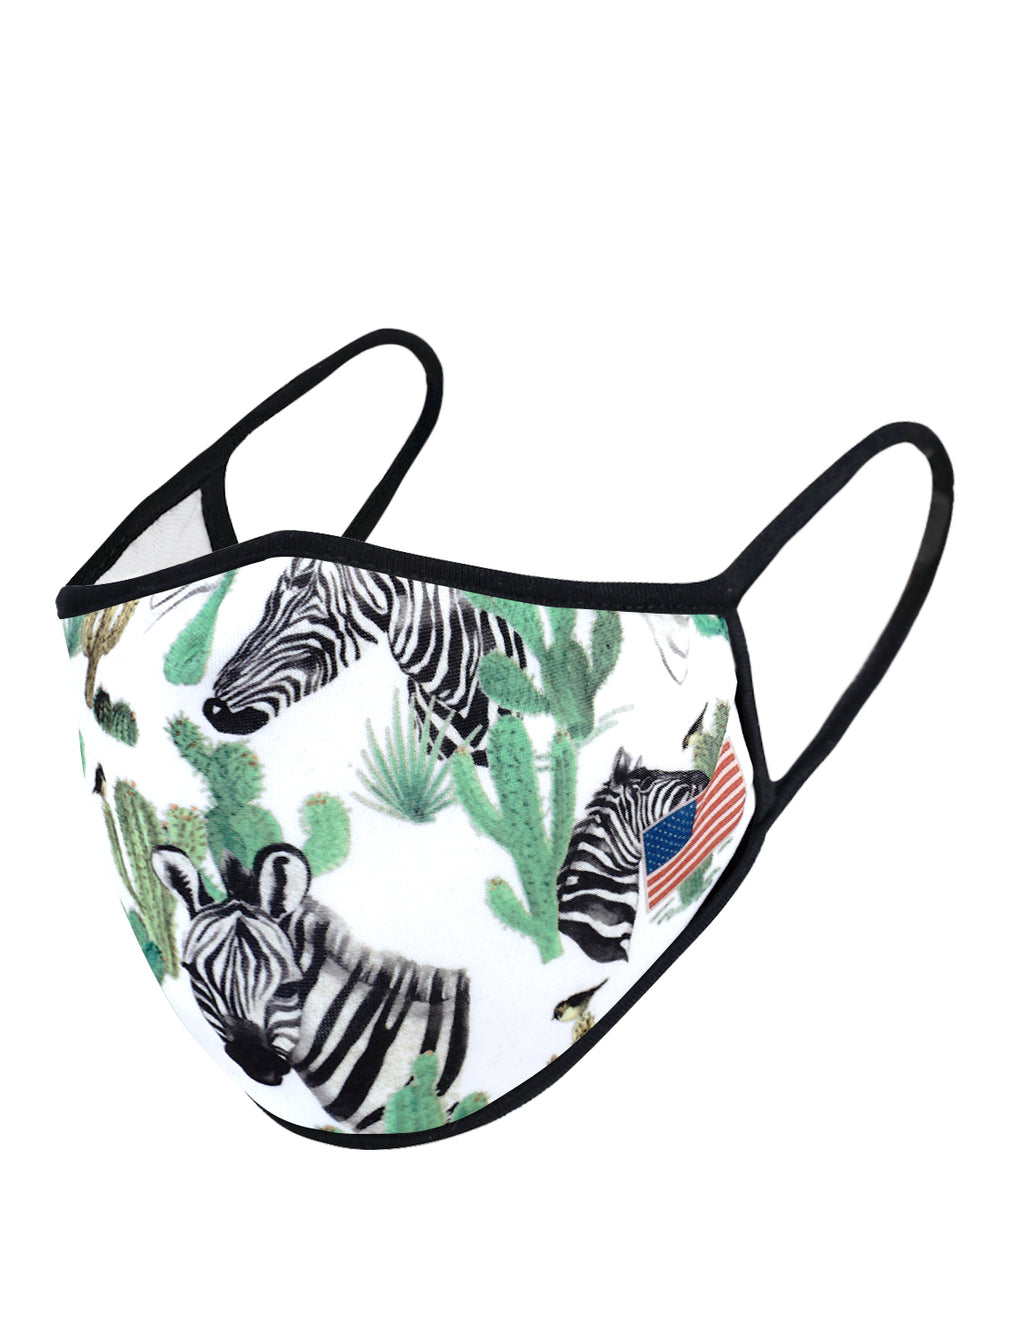 UXM0044 / One Size (12pcs) x $5.50-Fashion Print-Cotton Mask-White Zebra Animal US Flag Print Washable and Reusable Fashion Face Mask (UXM0044)-Urban X Apparel